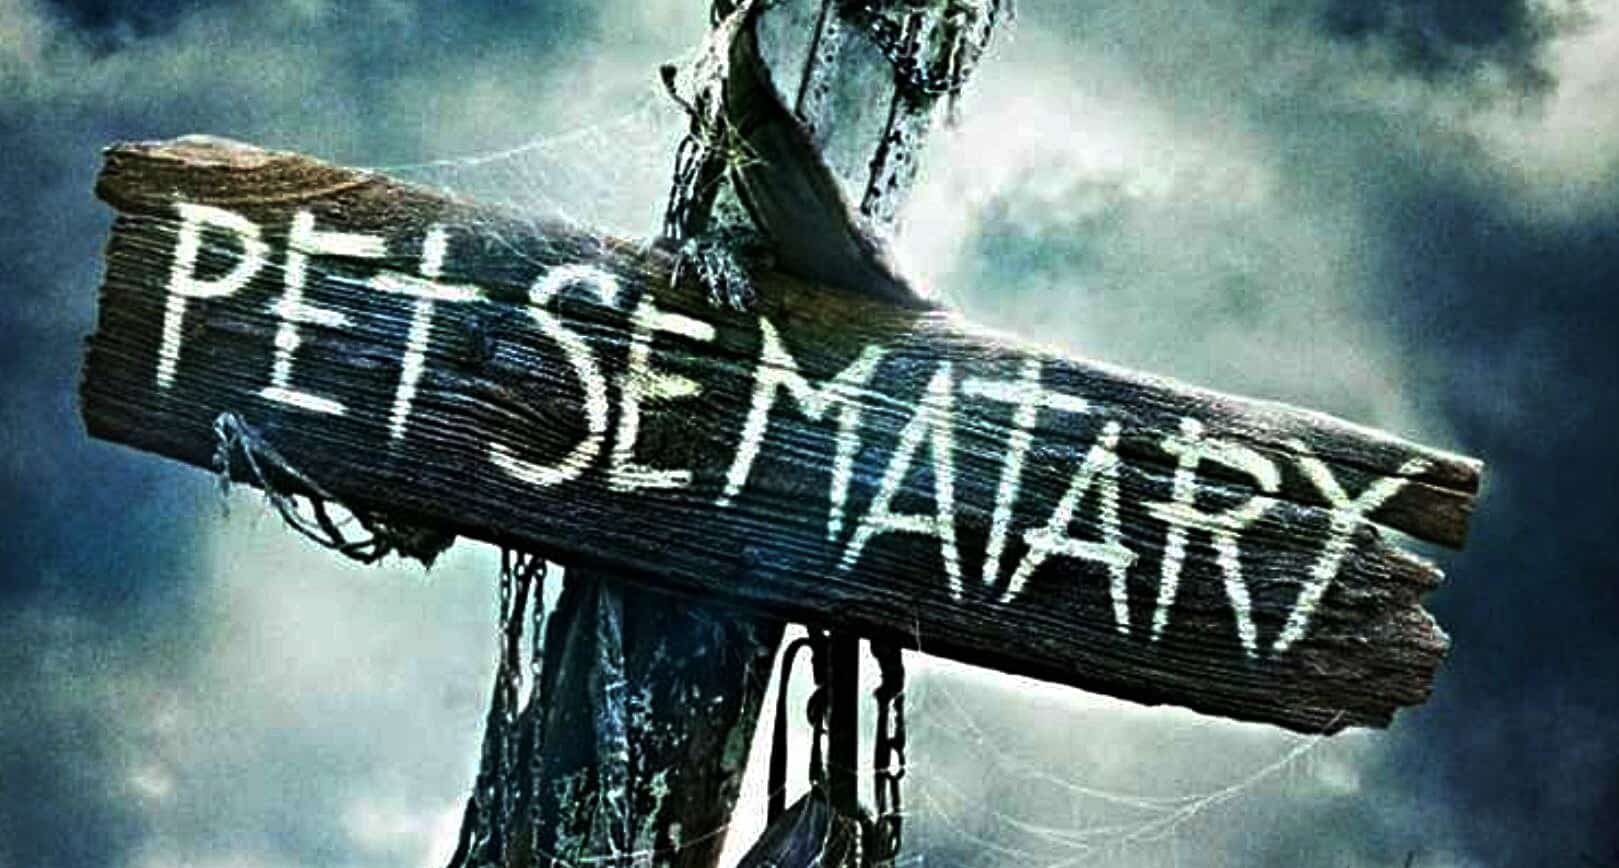 Movie Poster 2019: 'Pet Sematary' Prequel Is More Likely Than Sequel